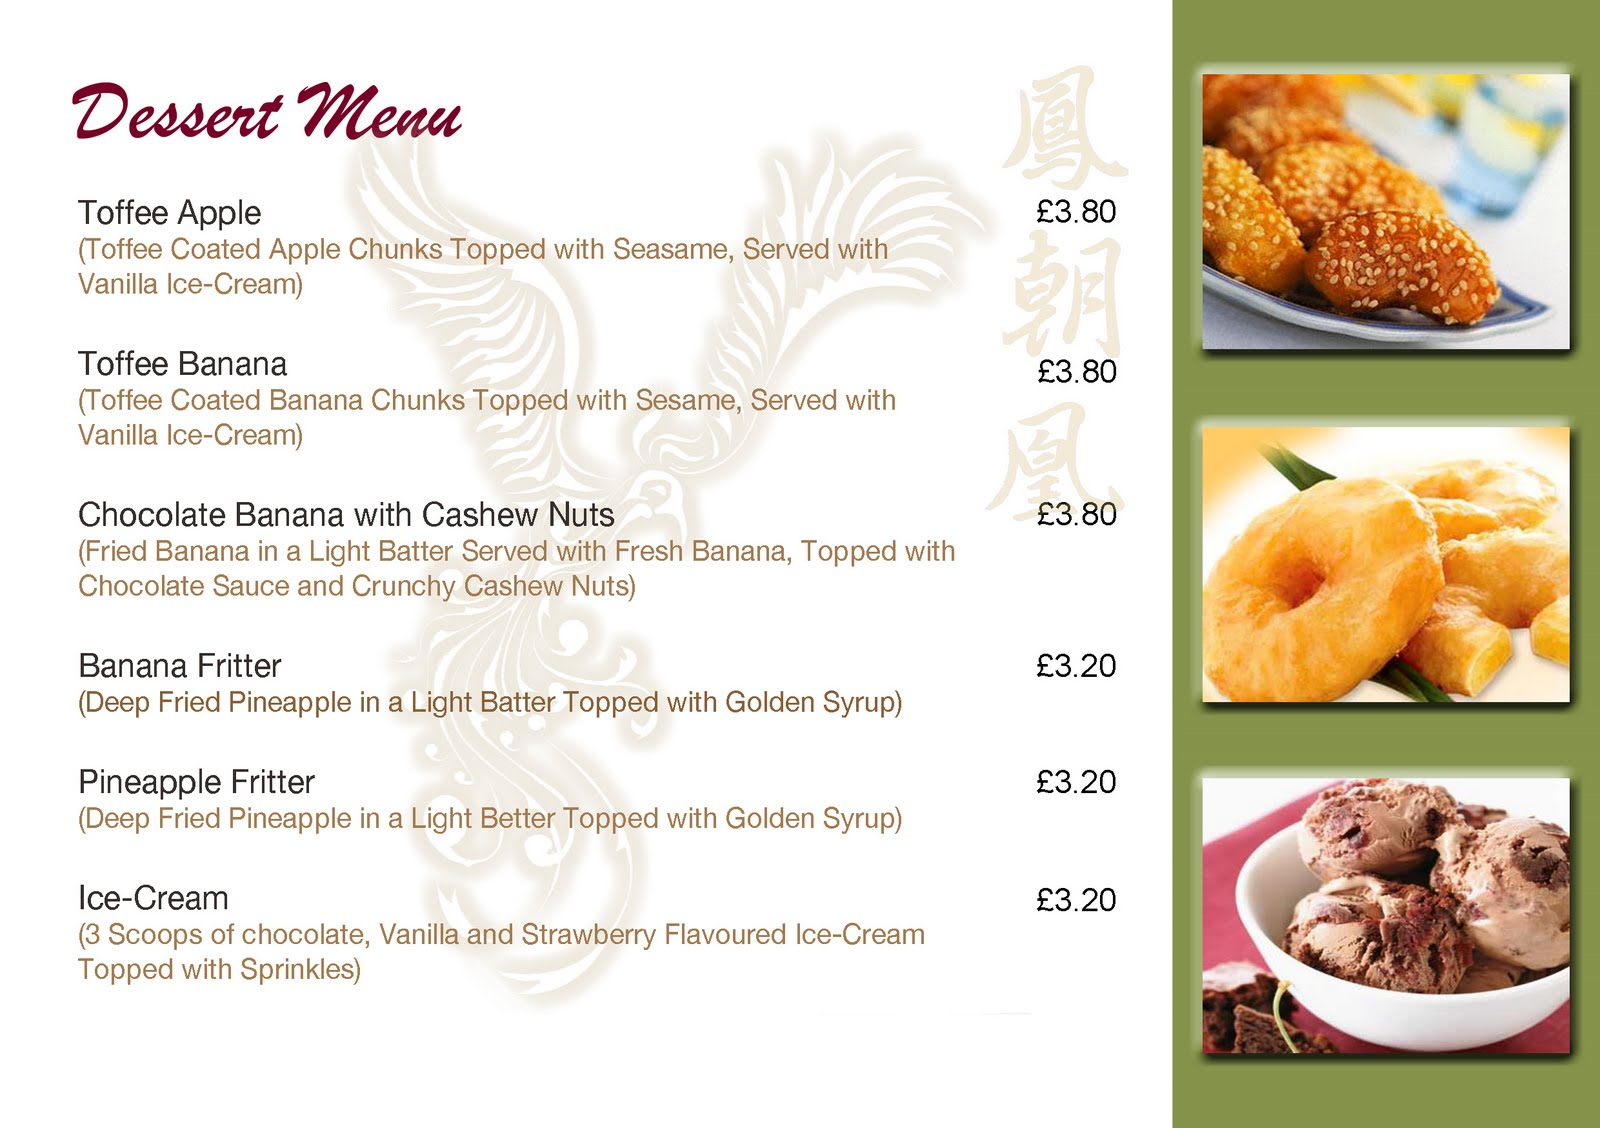 Phoenix ii chinese cuisine sheffield dessert menu for Asian cuisine menu